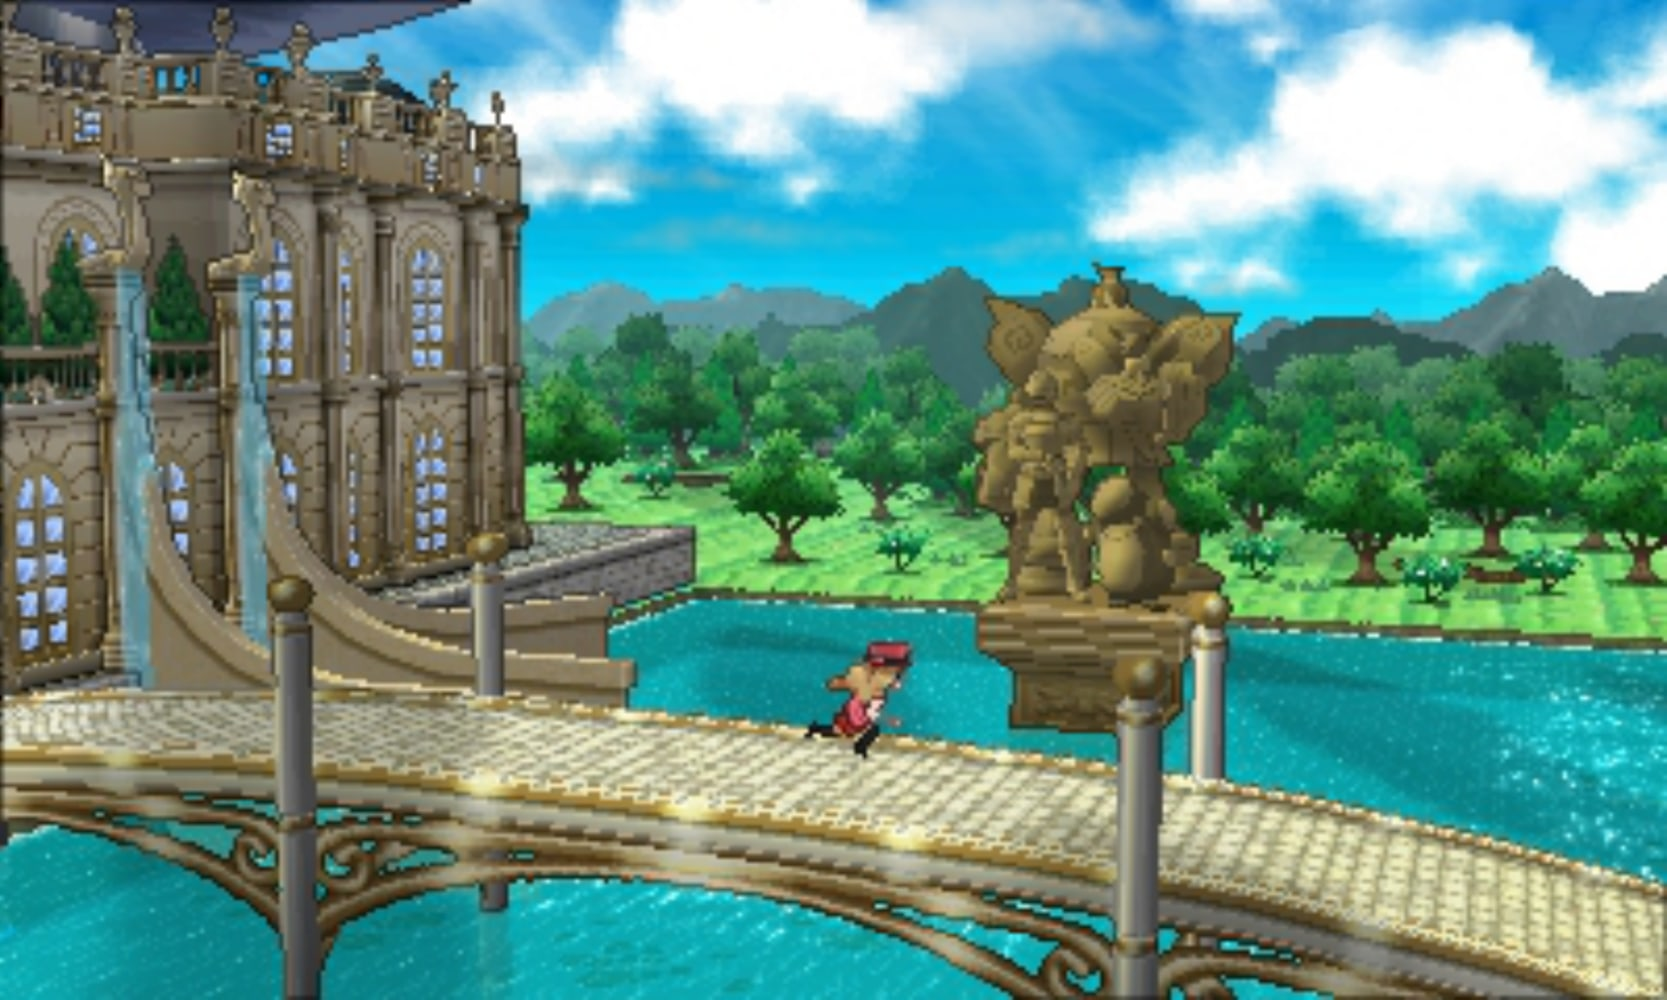 Nintendo puts itself back in the game with 2DS and 'Pokémon X & Y'